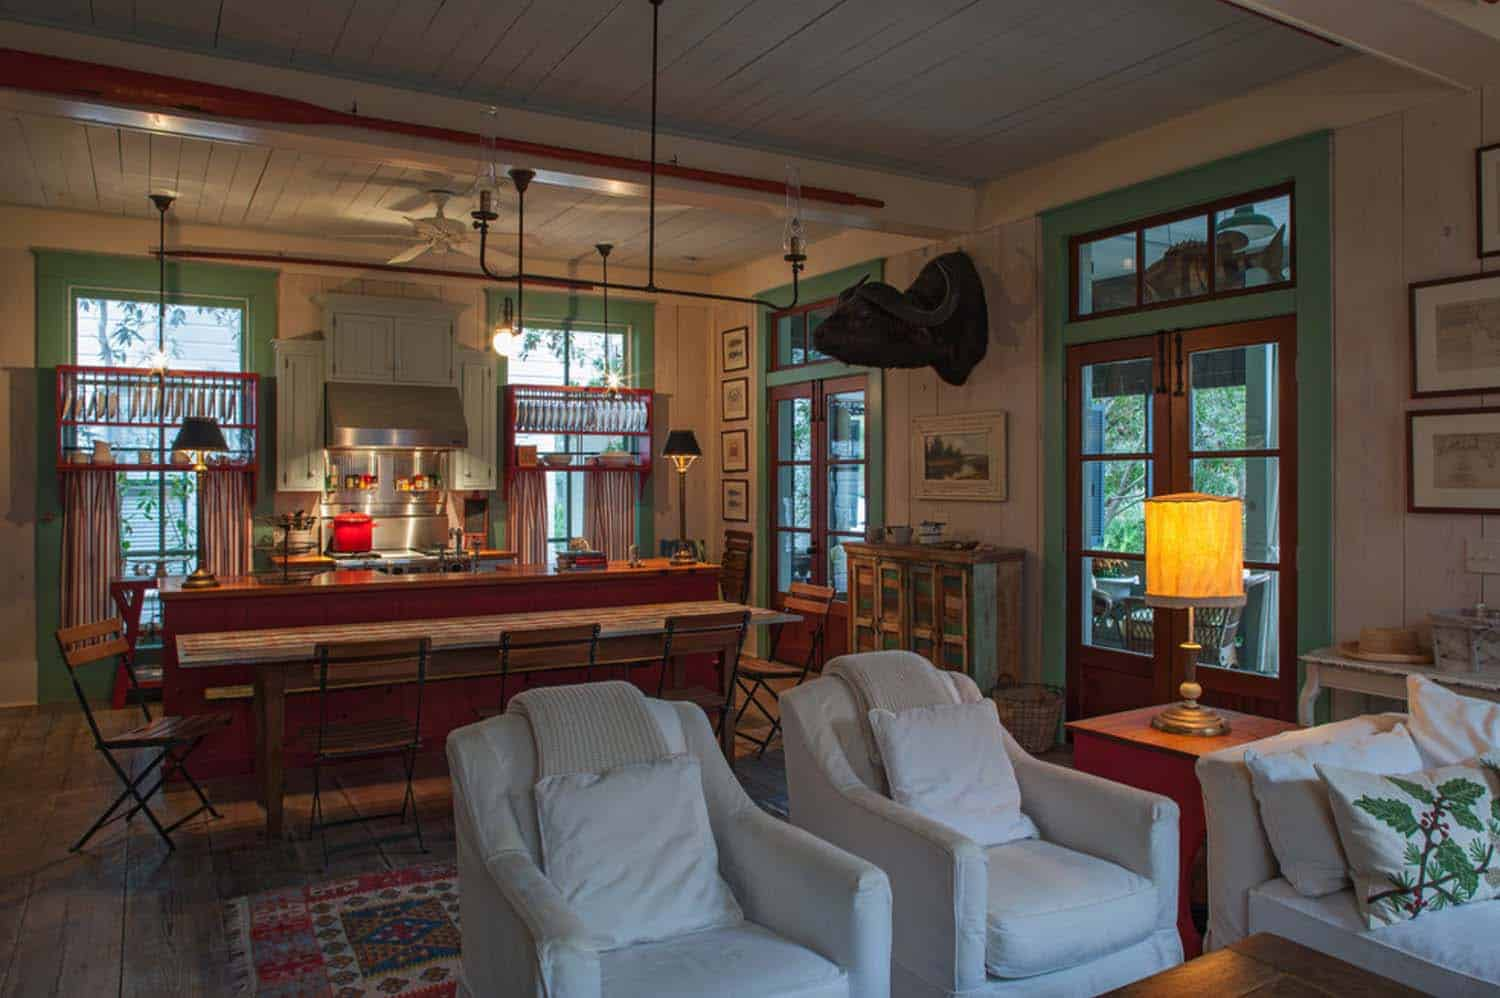 Charming fish camp style cottage invites relaxation in